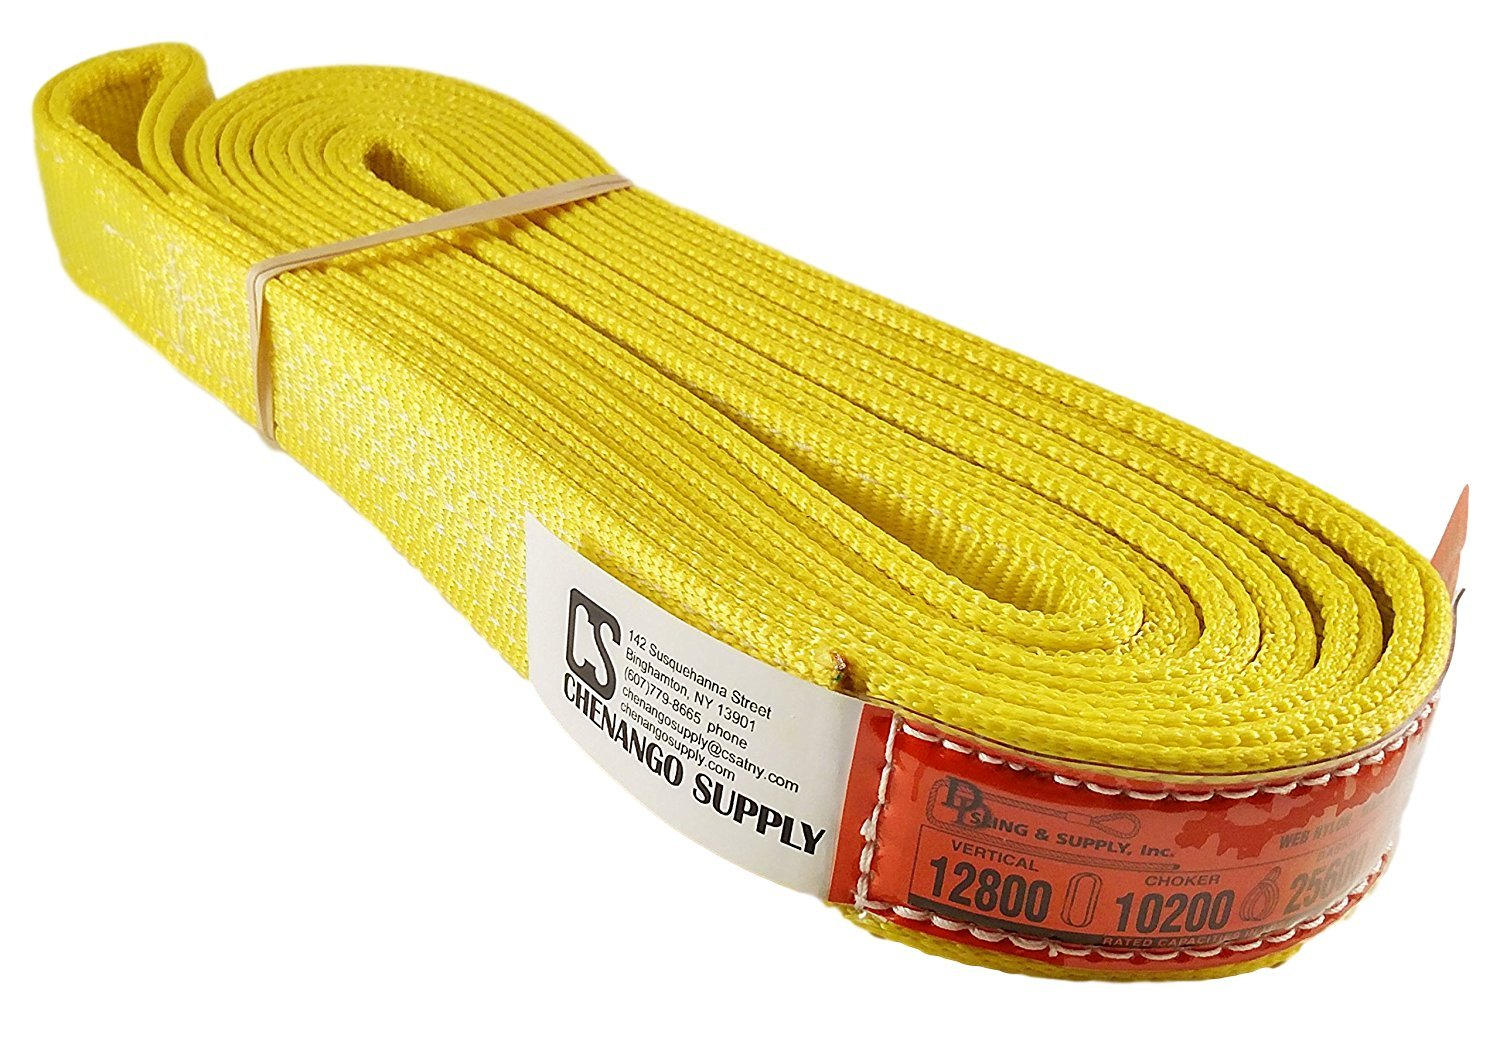 DD Sling (USA Made) 1'' & 2'' Widths By 6' to 12' Lengths in Listing, 2 Ply, Endless Nylon Lifting Slings, Heavy Duty (900 webbing), 12,800 lbs Vertical, 10,200 lbs Choker, 25,600 lbs Basket Load Capacity (USA Made Nylon Webbing) (2''x8')